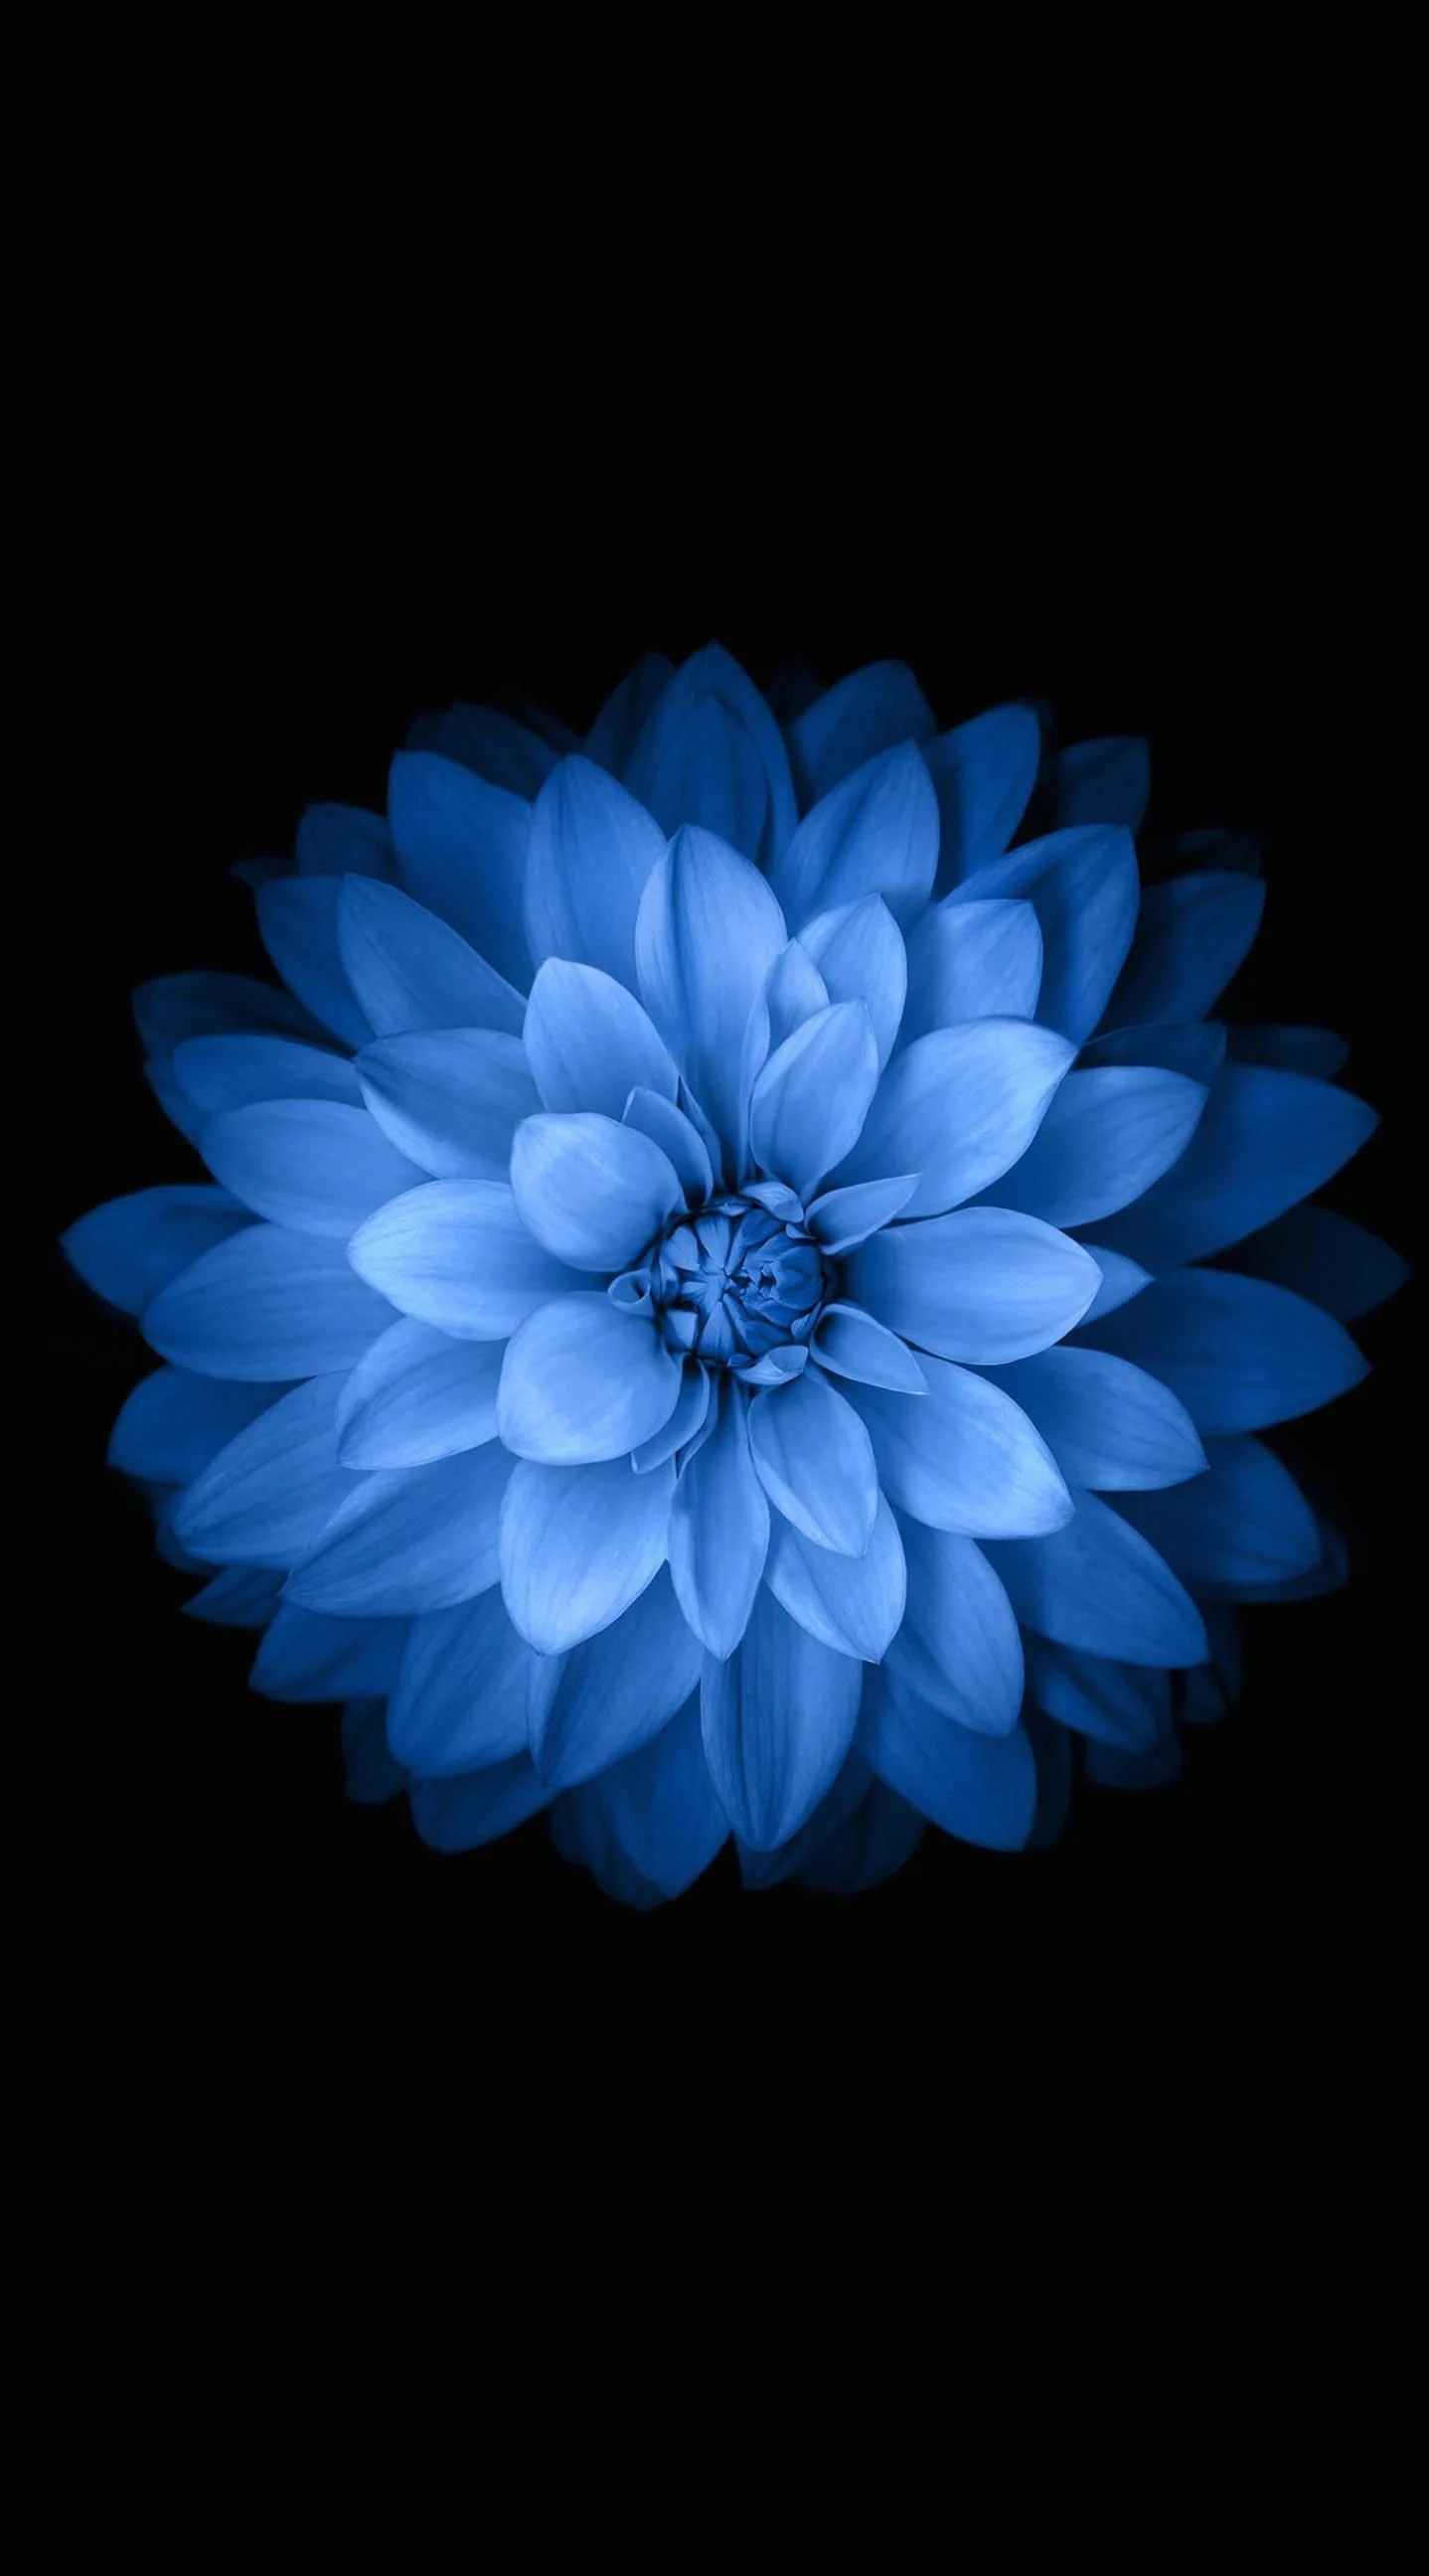 Blue Flower Iphone Wallpapers Top Free Blue Flower Iphone Backgrounds Wallpaperaccess